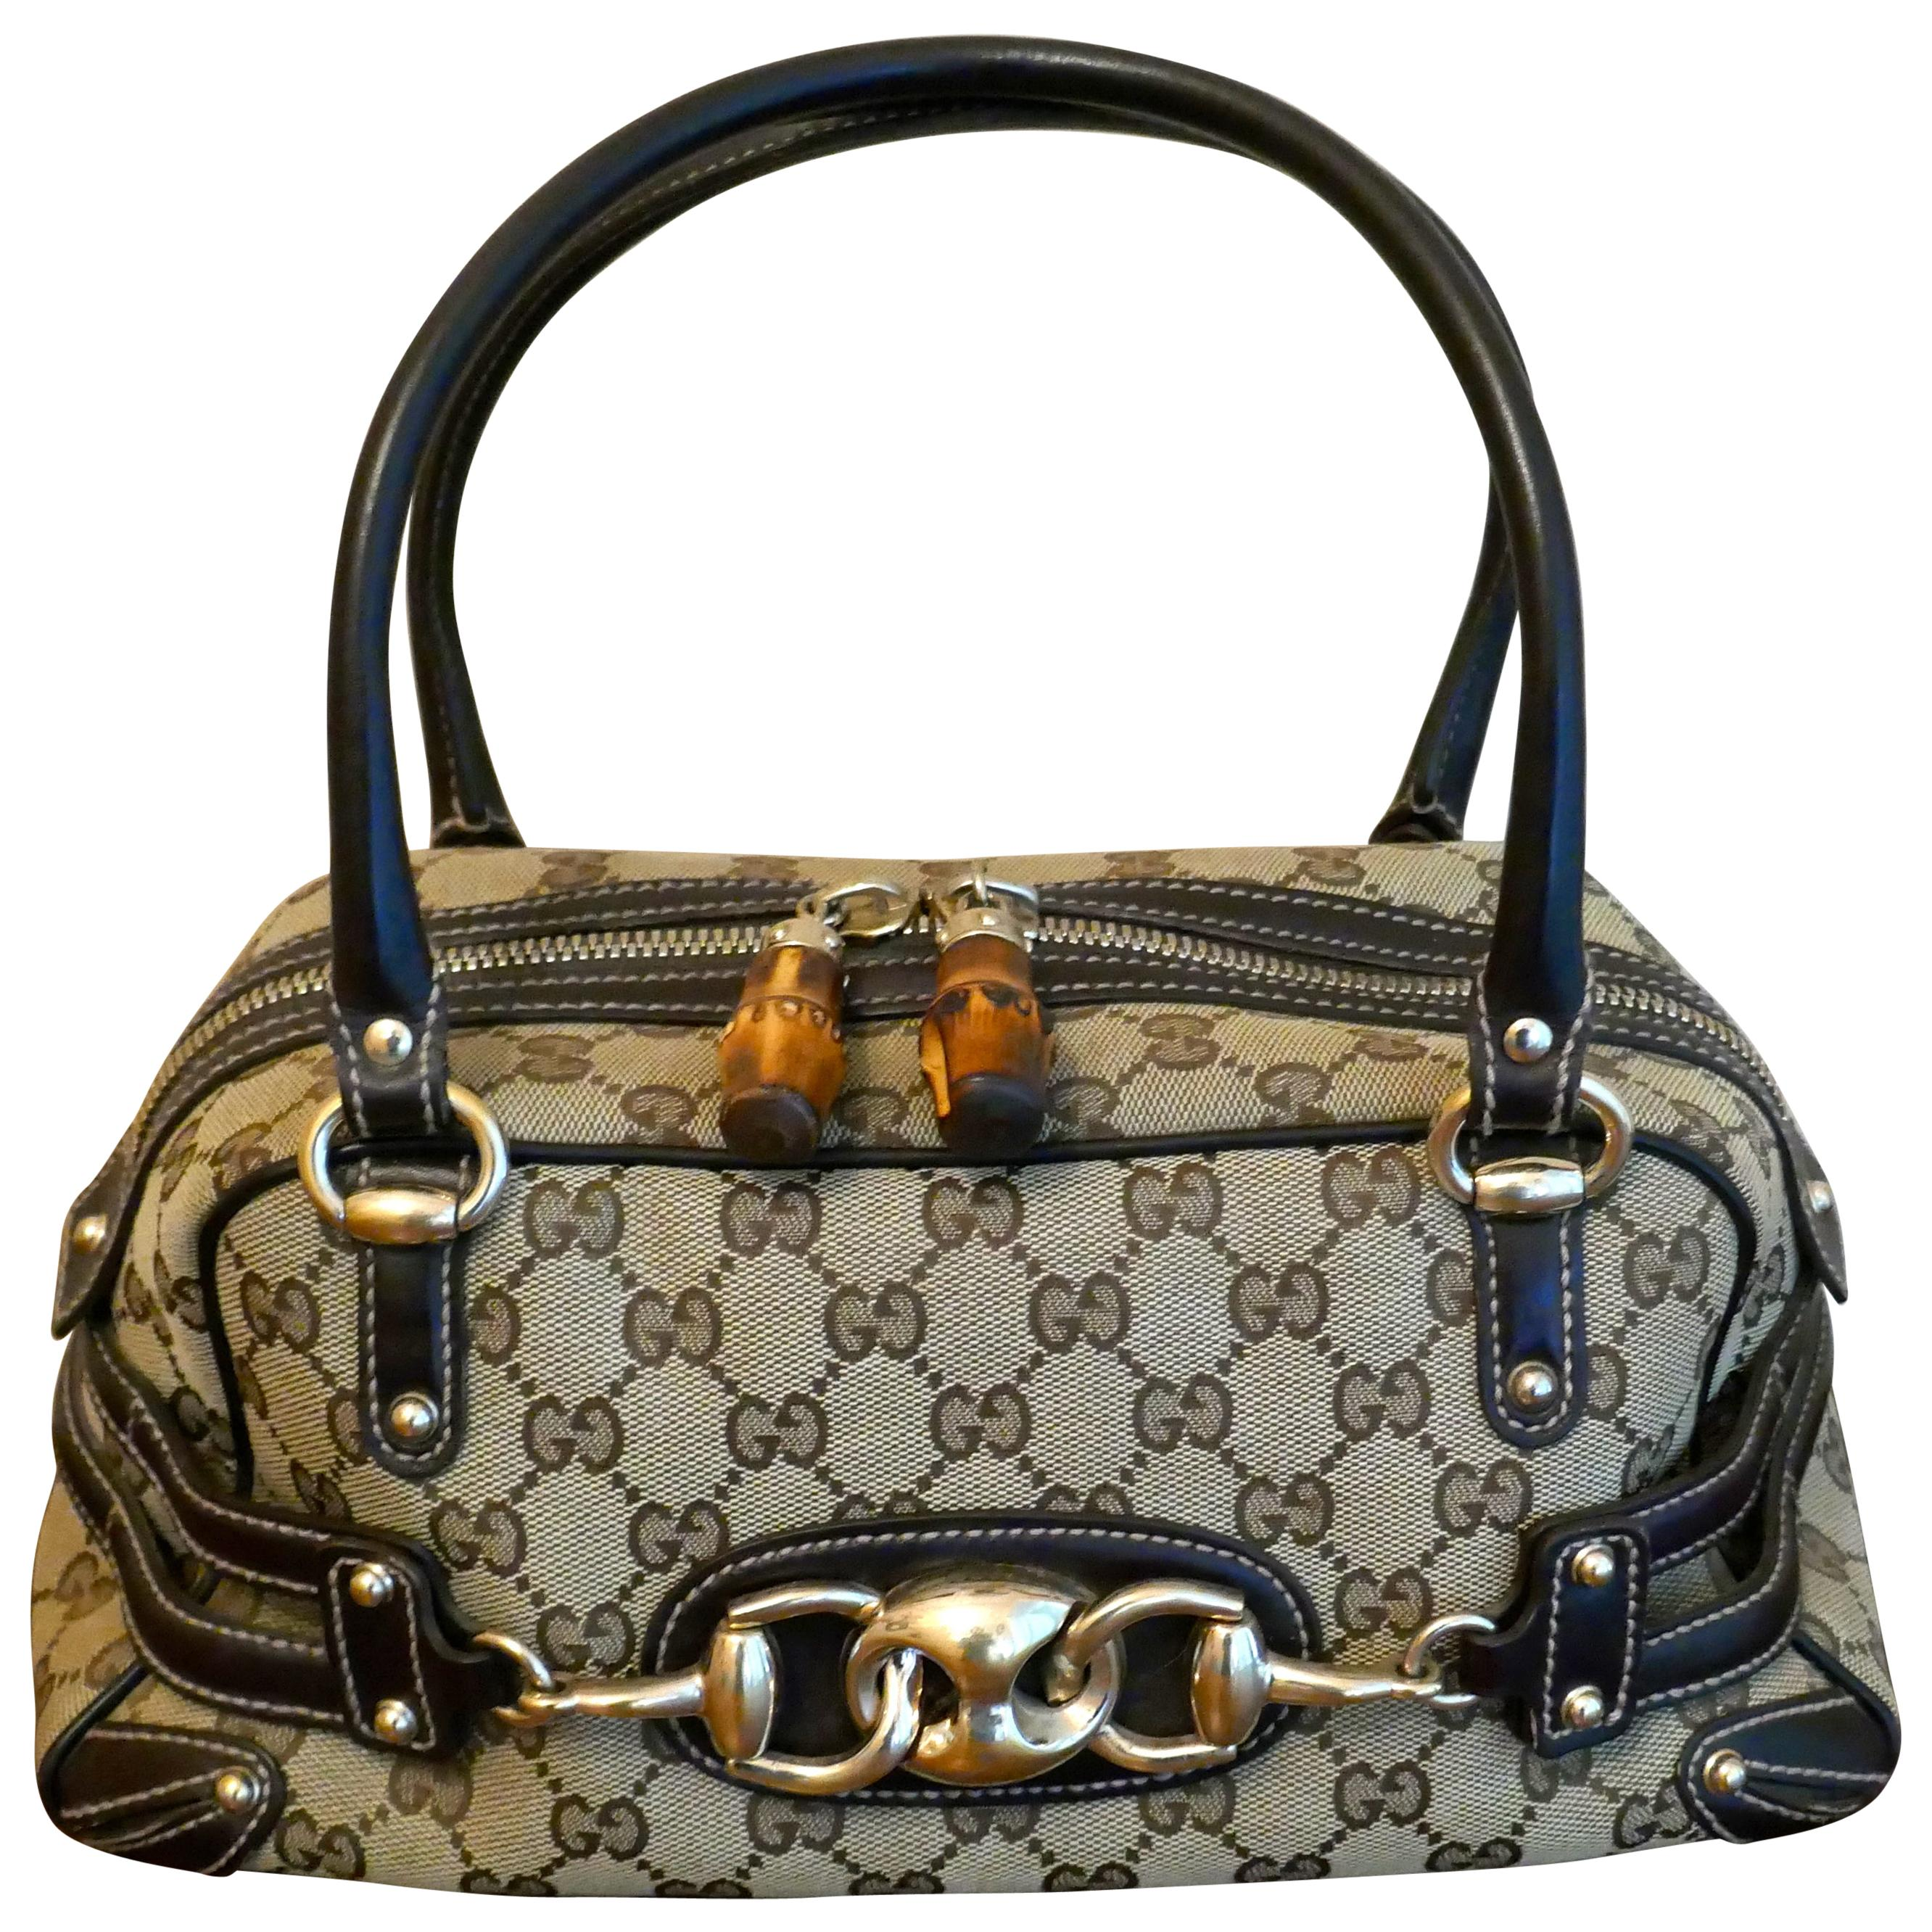 b1e42c19d02fa0 Vintage Gucci Handbags and Purses - 2,046 For Sale at 1stdibs